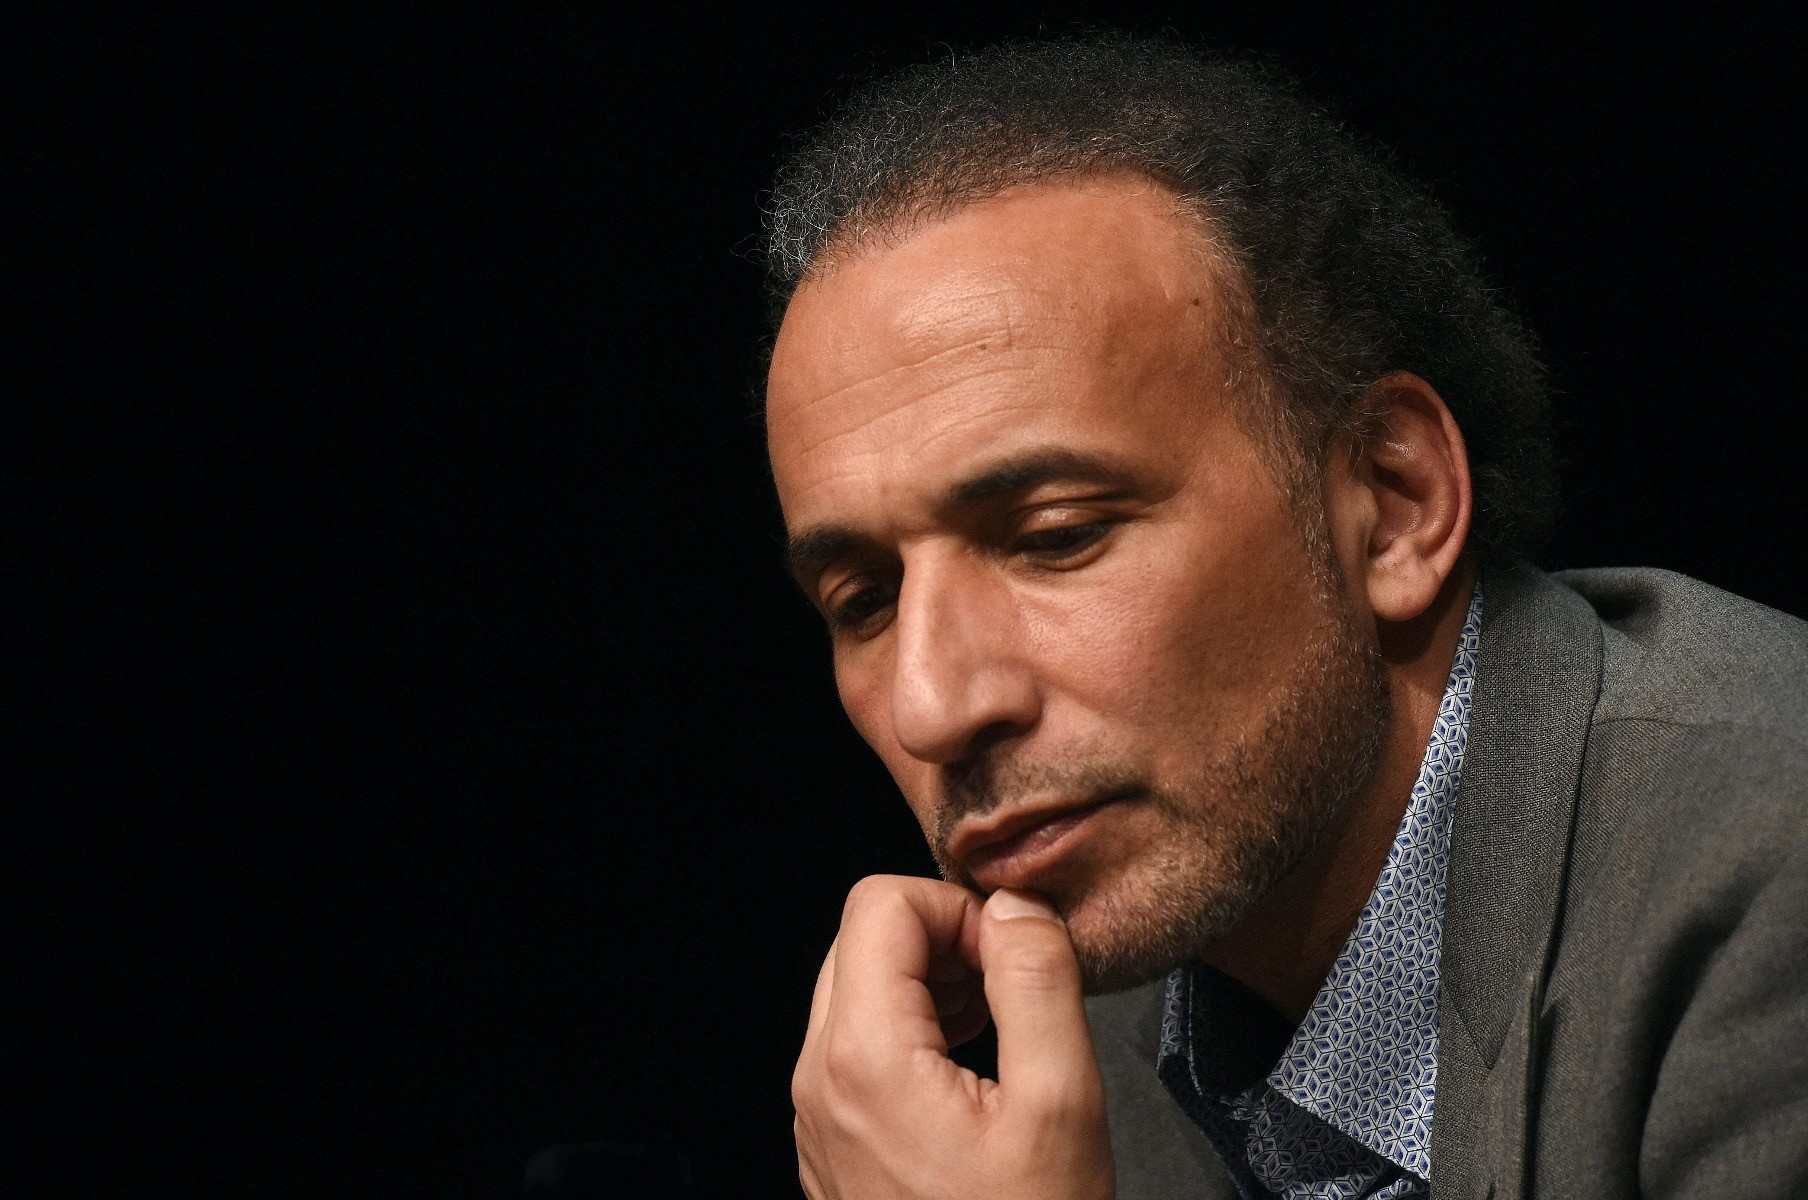 Professor Tariq Ramadan takes part in a conference on the theme ,Live together, in Bordeaux, March 26, 2016.